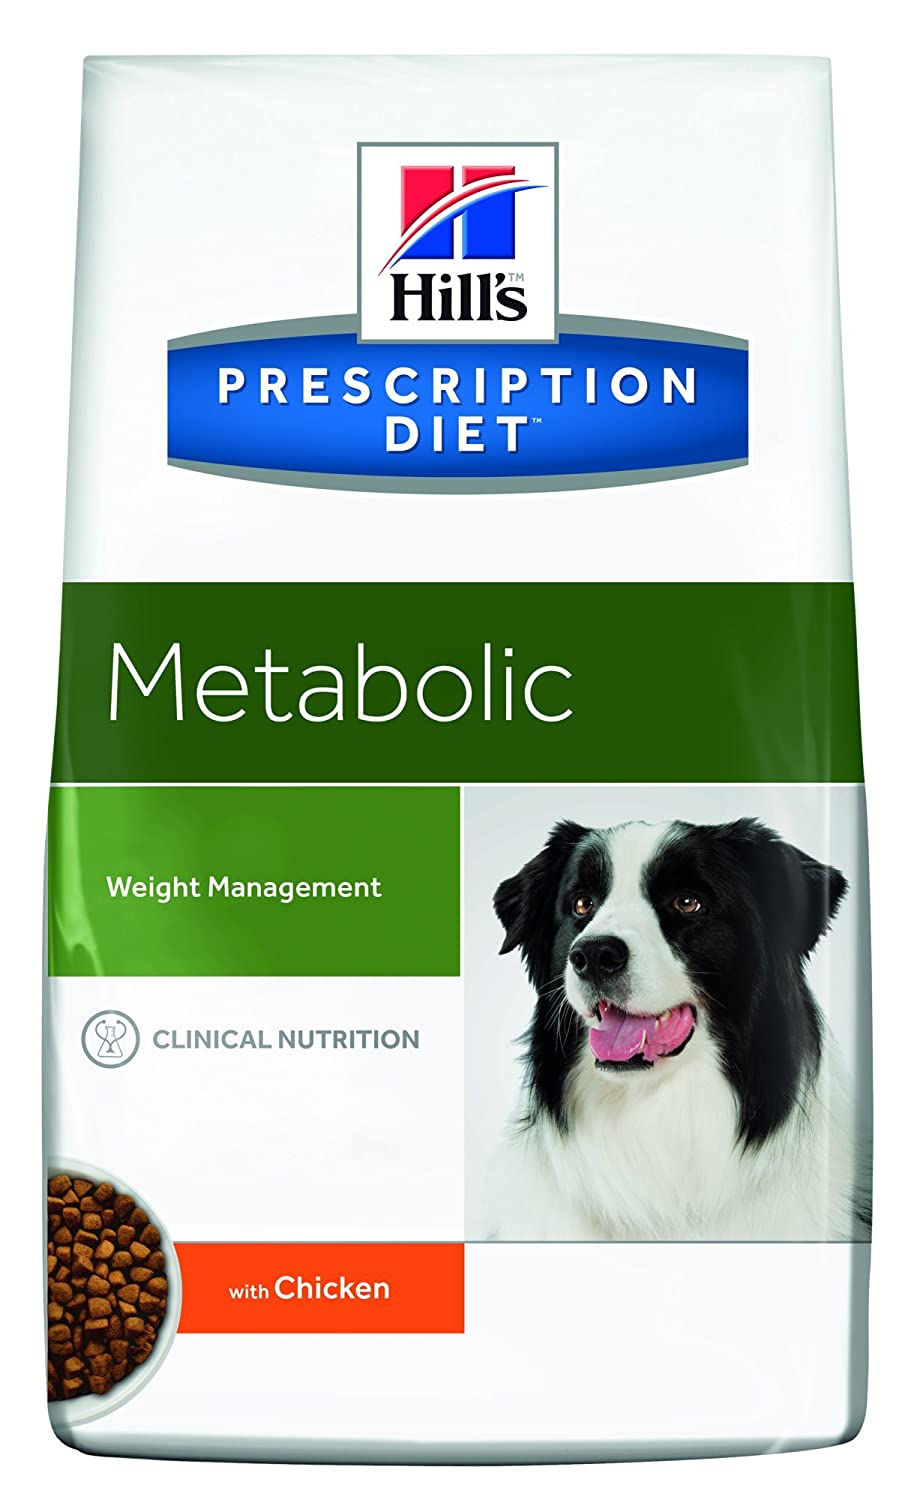 Hill's Prescription Diet - Hills Prescription Diet Canine Metabolic 12 kg Hill' s